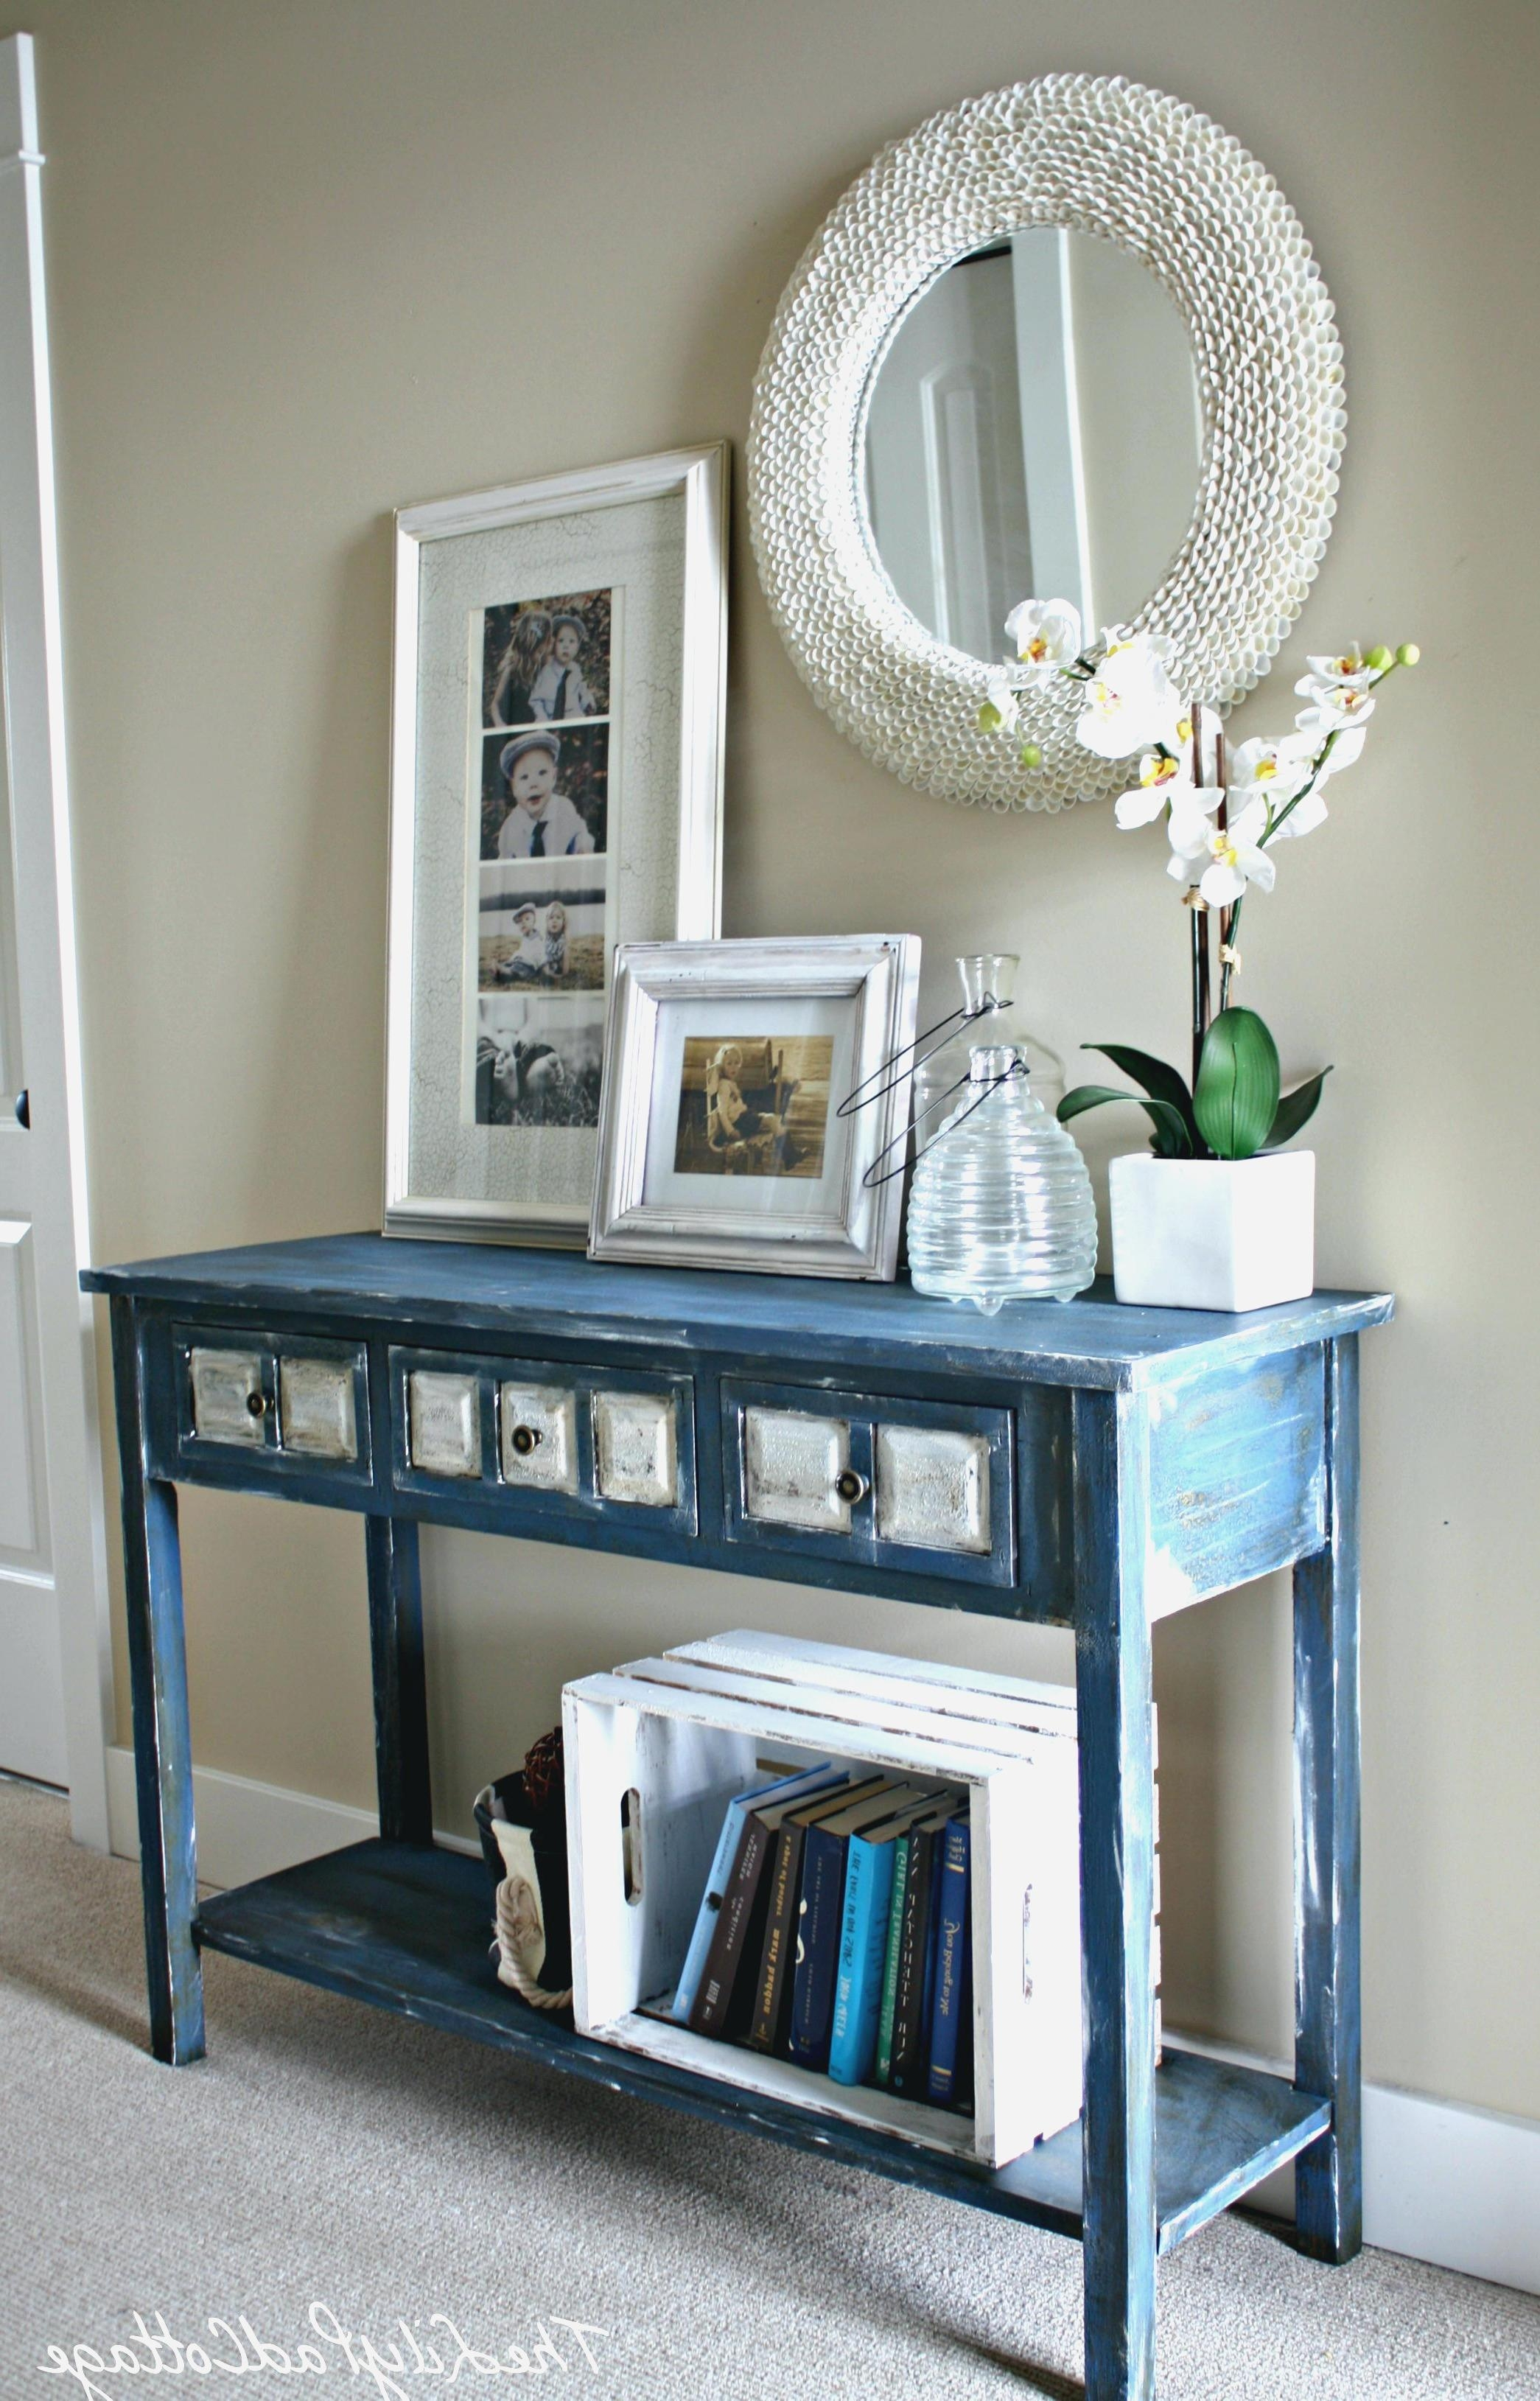 Endearing 50+ Entry Hall Tables And Mirrors Inspiration Of Best 25 Intended For Mirrors For Entry Hall (View 12 of 21)